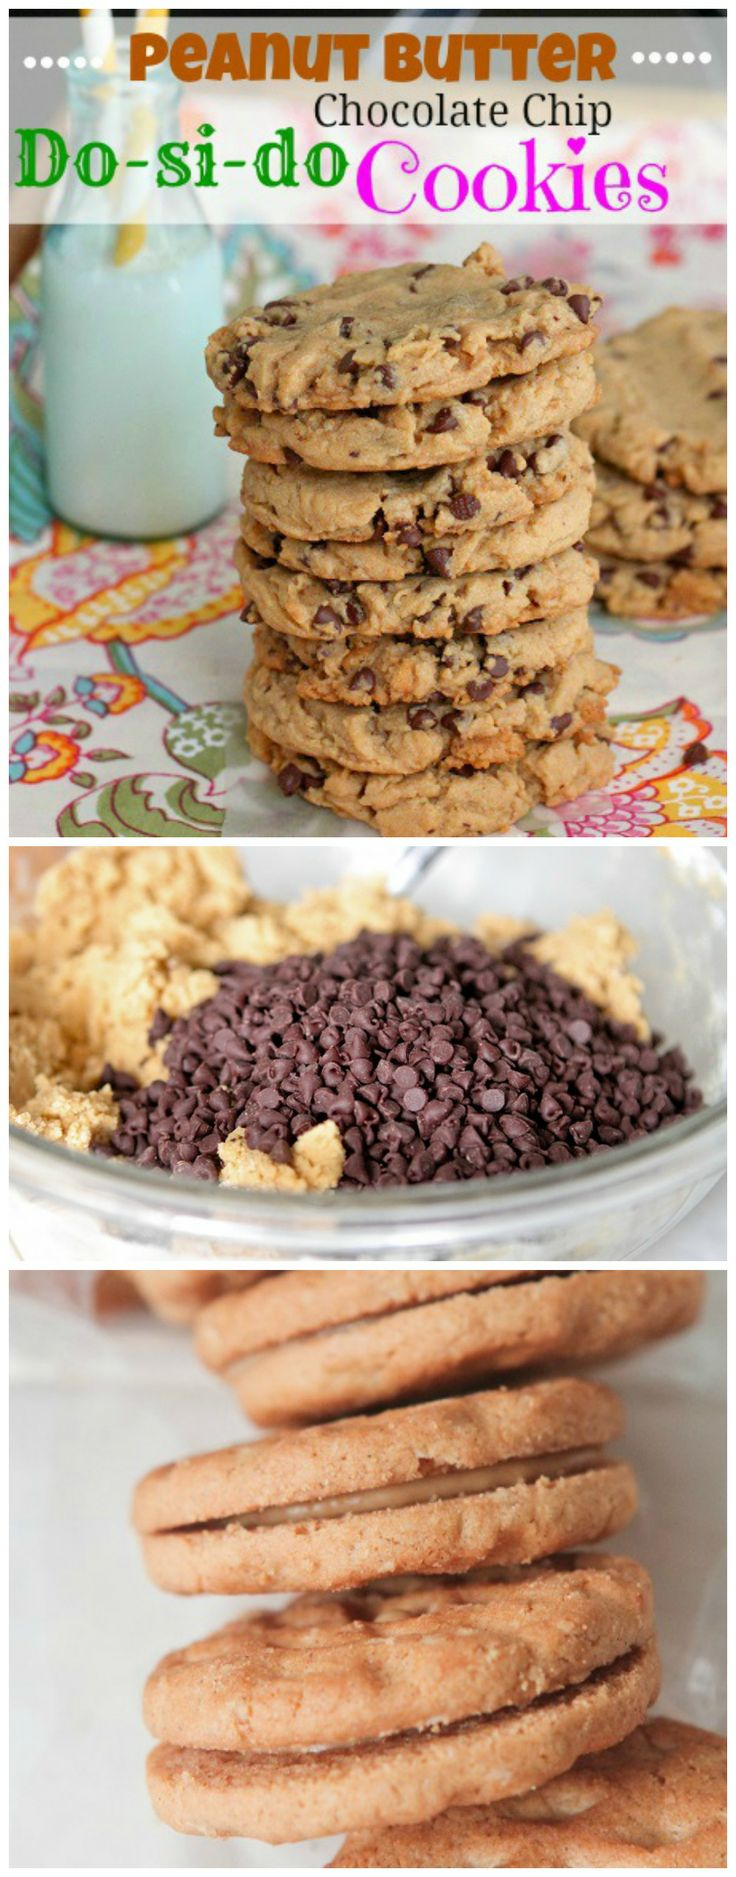 Peanut Butter Do-si-do Chocolate Chip Cookies!